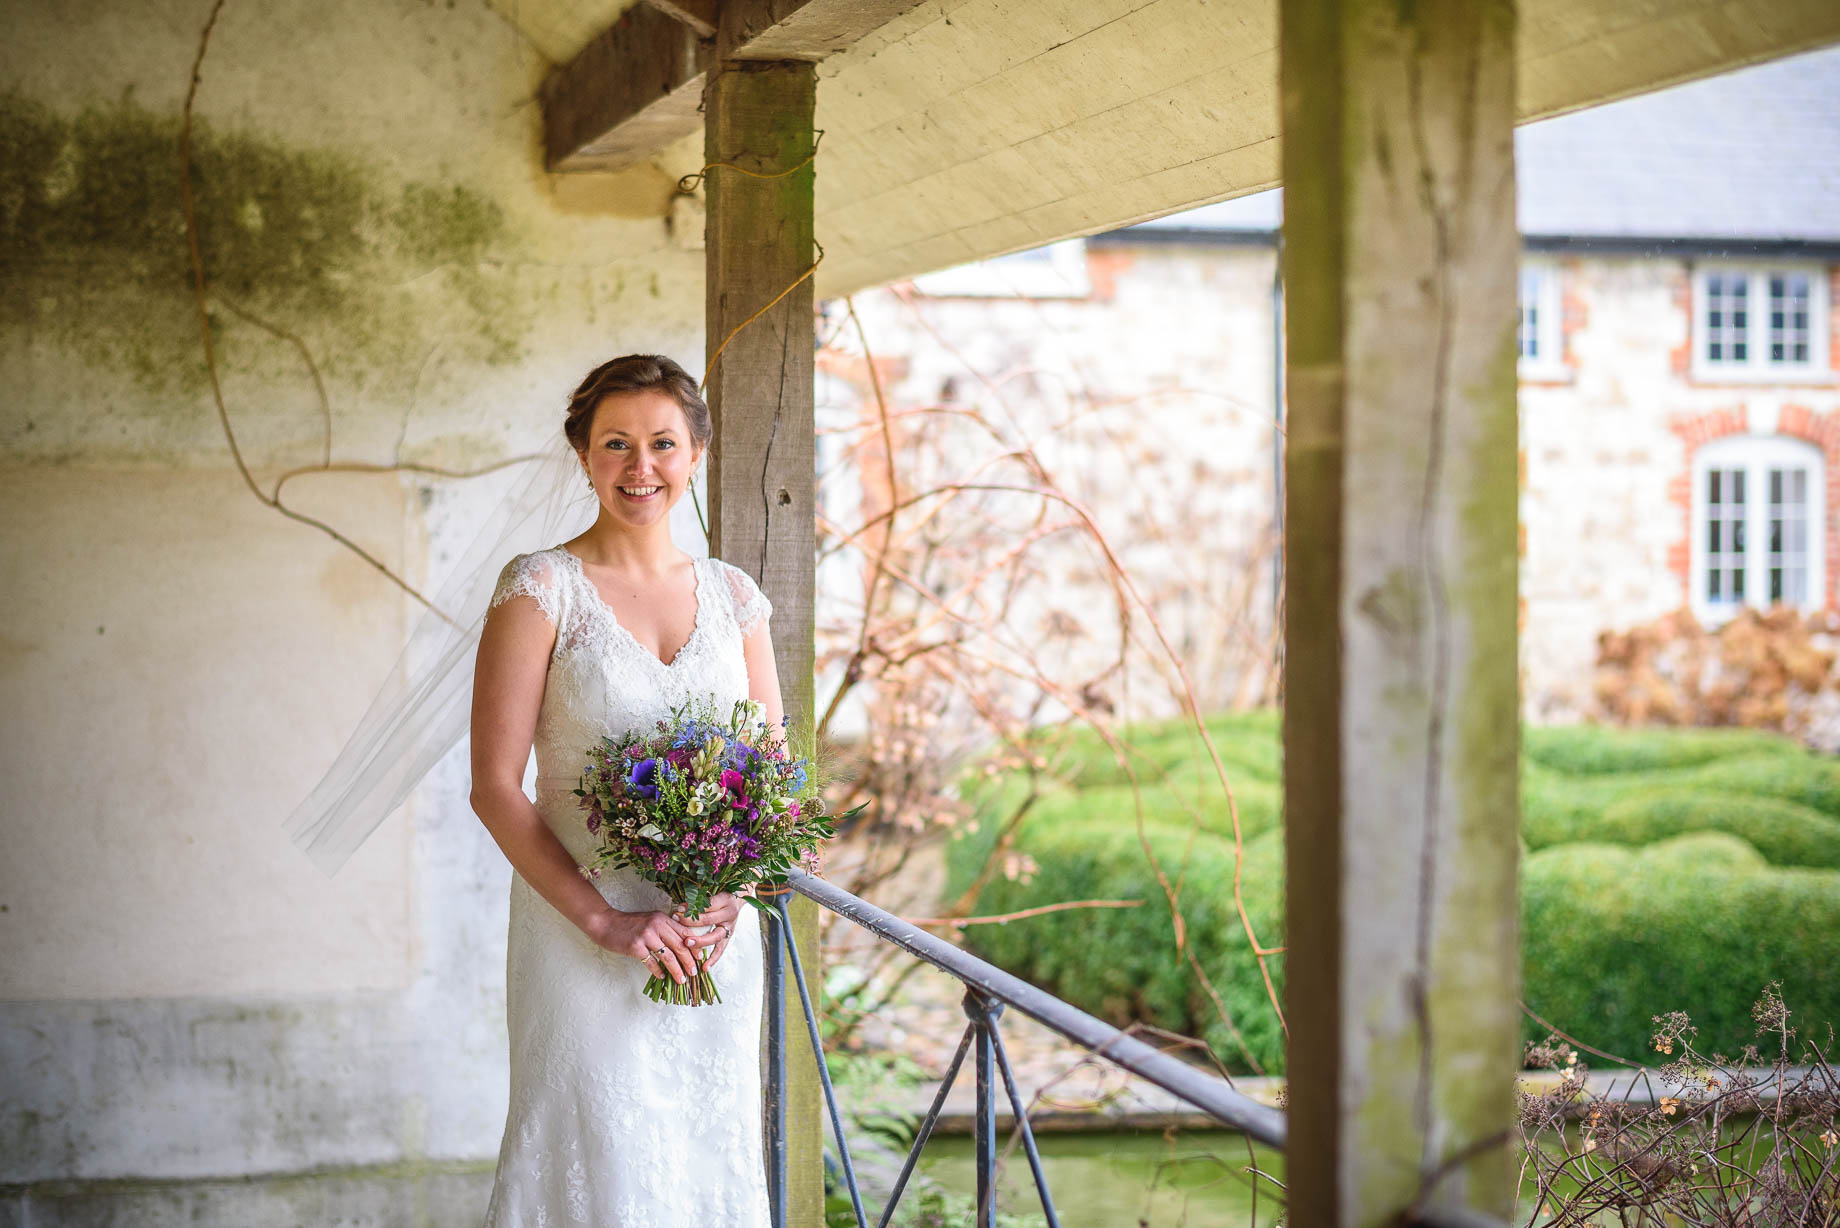 Ashley's Wedding at Bury Court Barn in Bentley